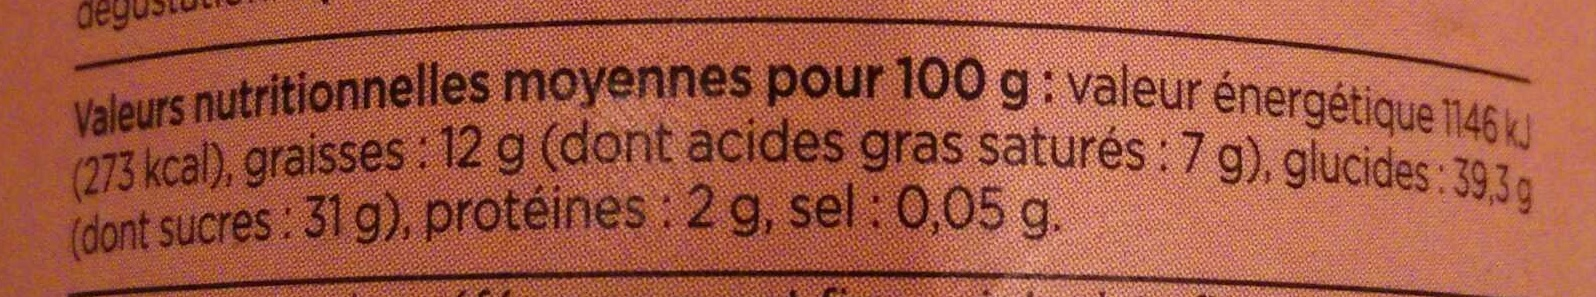 Angelina - Informations nutritionnelles